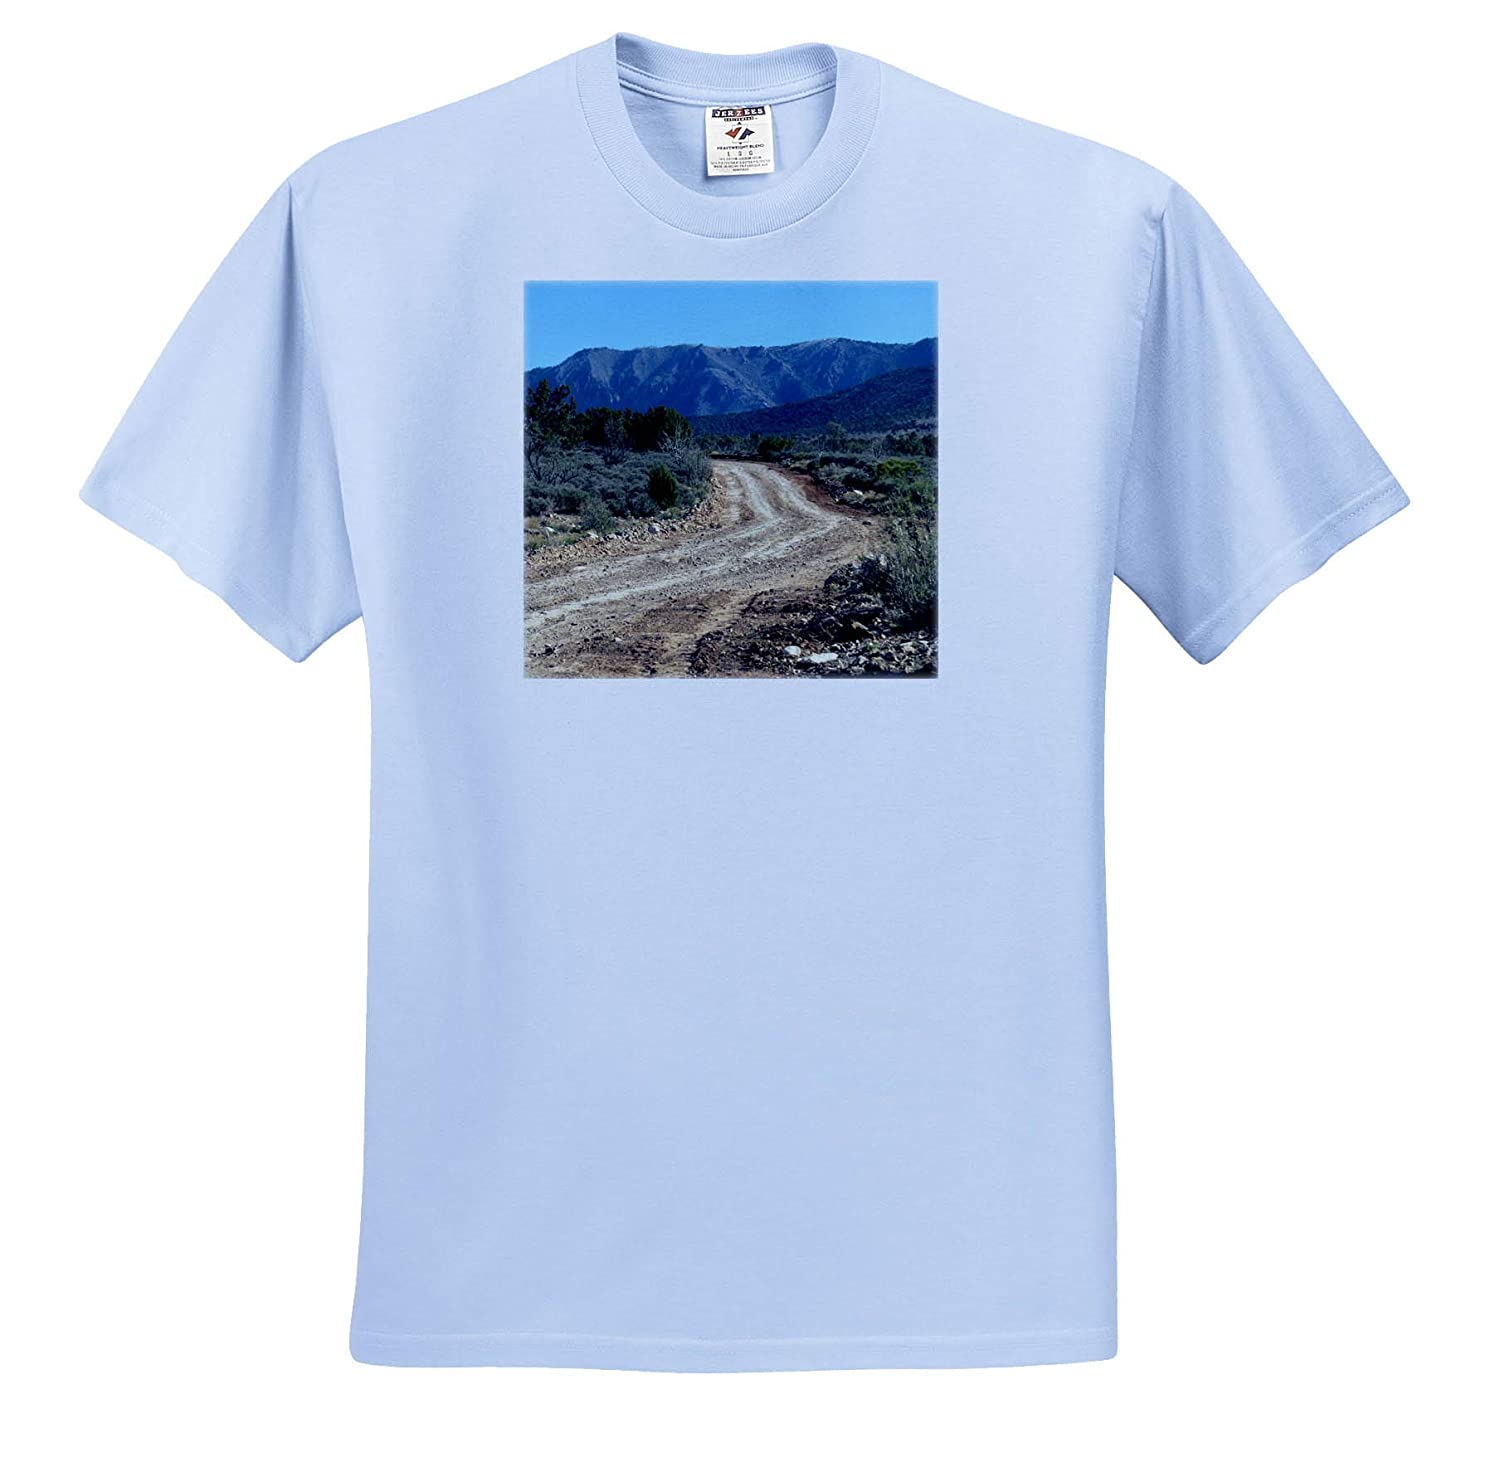 ts/_318874 Adult T-Shirt XL A Dirt Road Out to a Mountain in Southern Utah 3dRose Jos Fauxtographee- Backroad